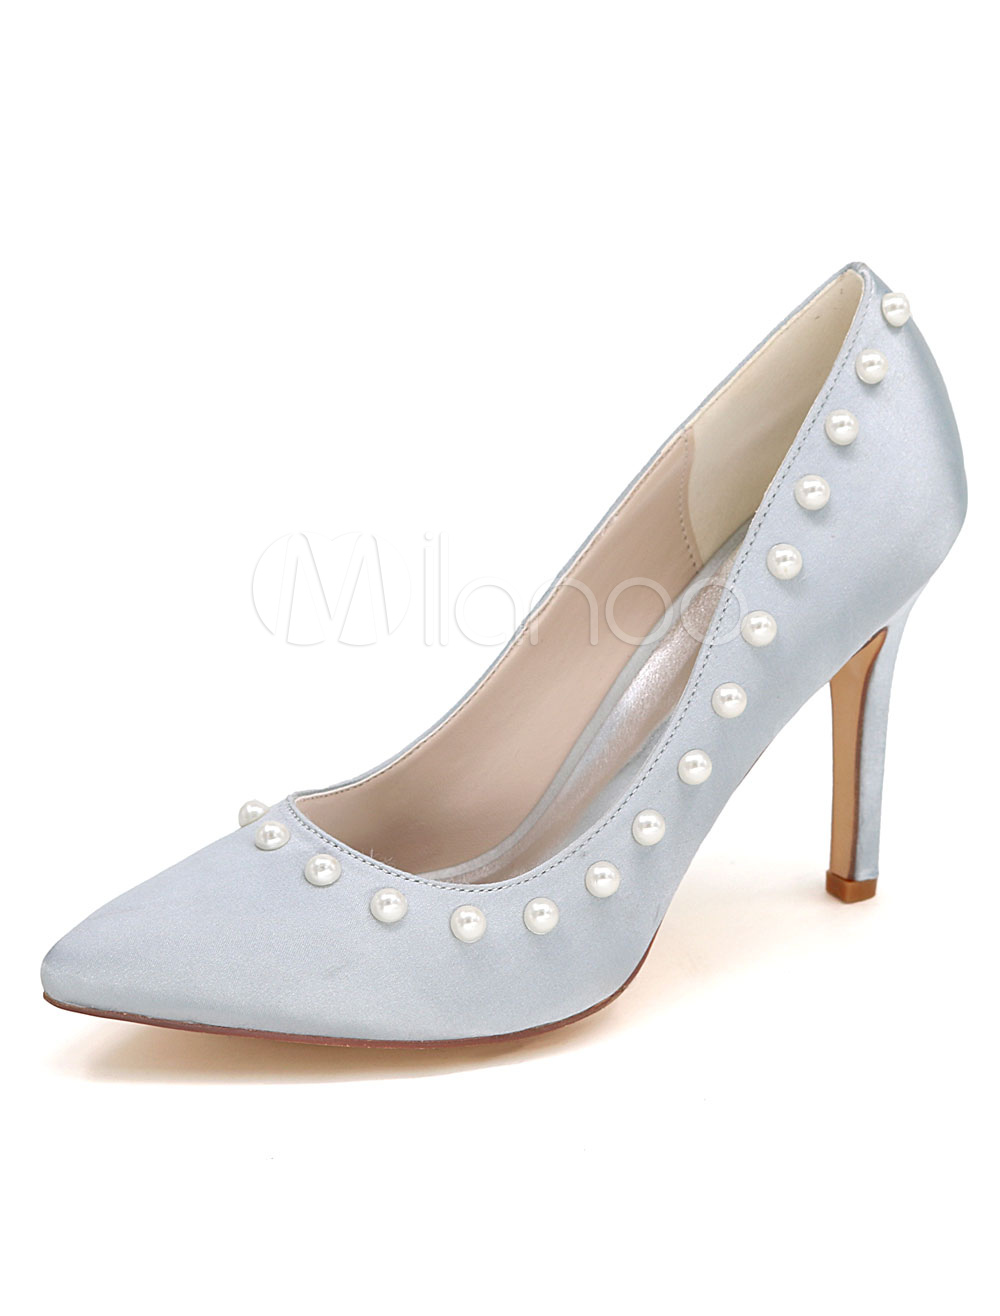 Buy Silver Wedding Shoes High Heel Pearl Satin Slip-On Bridal Shoes for $47.69 in Milanoo store